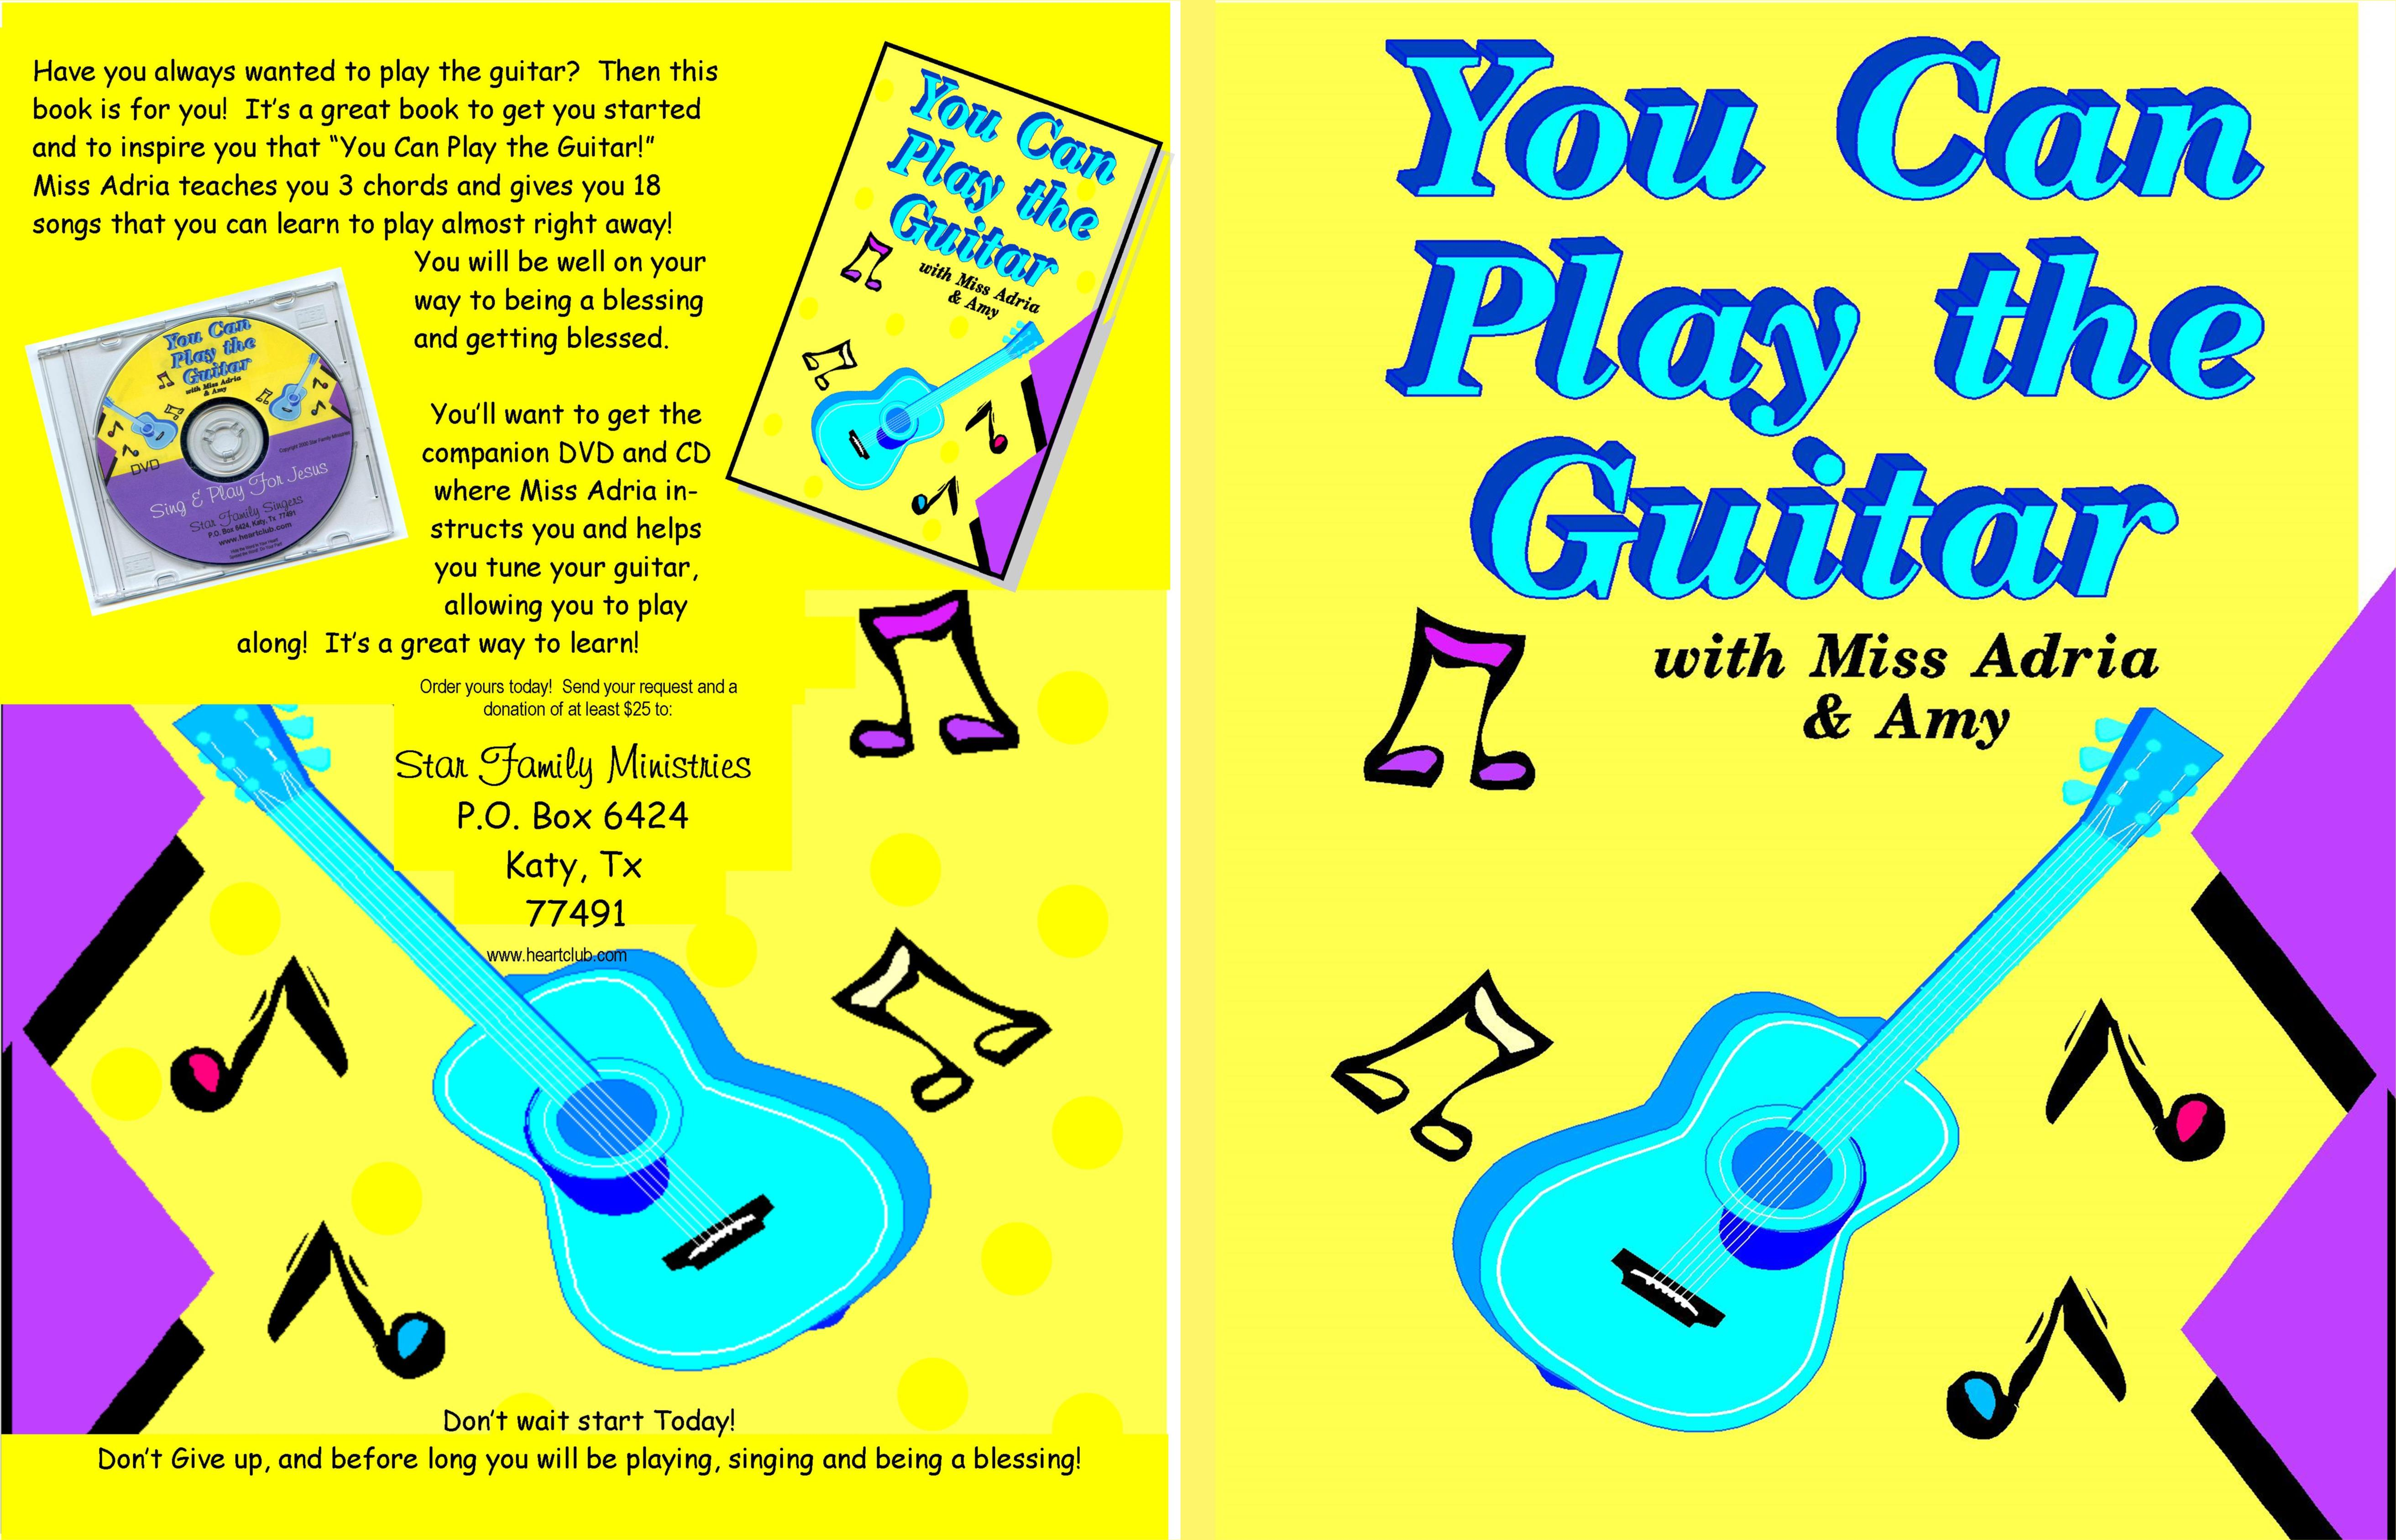 You Can Play the Guitar cover image